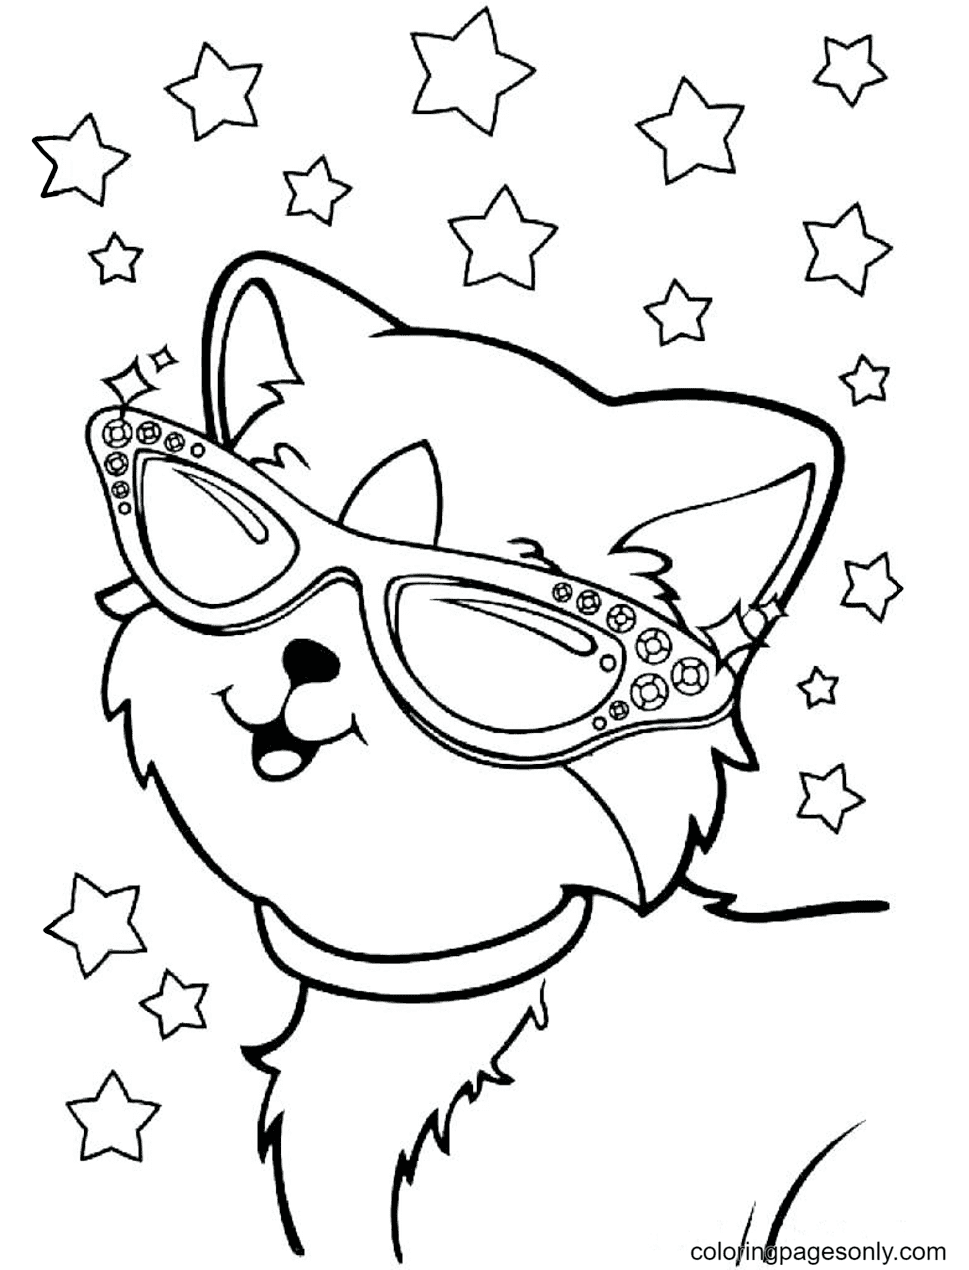 Kitty Wearing Glasses Coloring Page